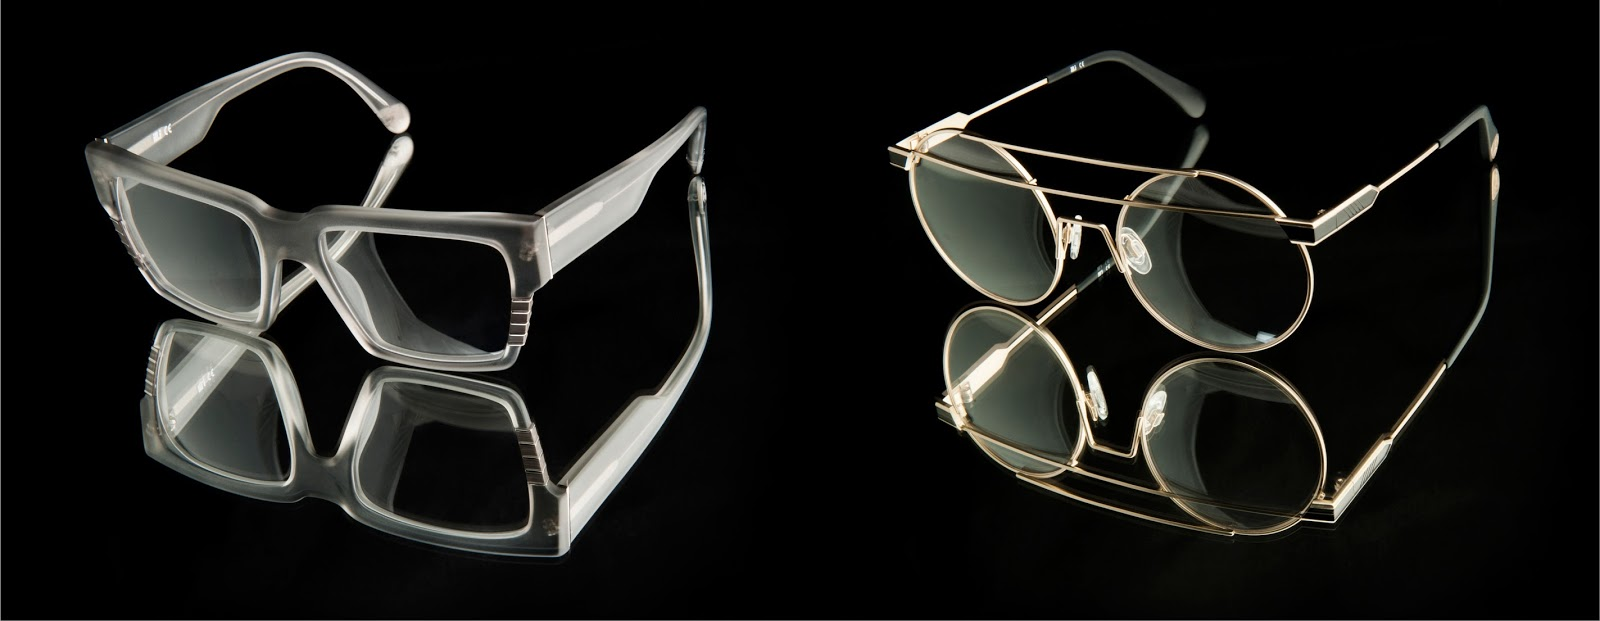 61a58052c4 will.i.am is renowned for his contributions in the worlds of style and  innovation